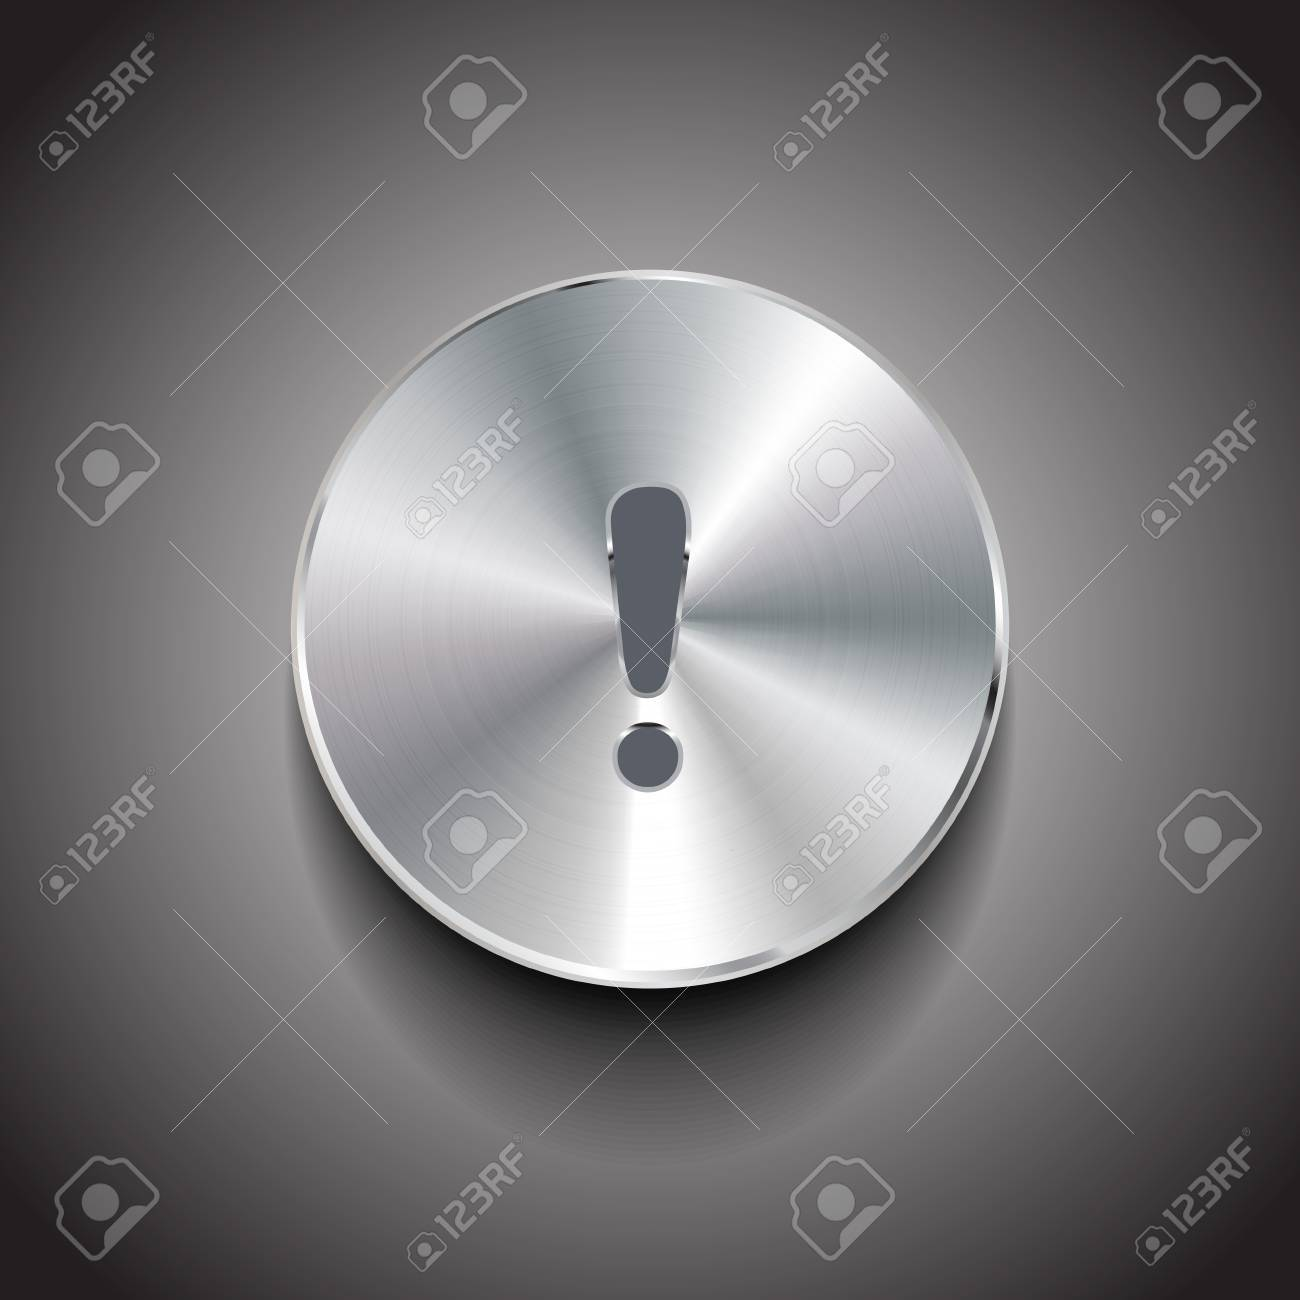 brushed metal exclamation mark button Stock Vector - 18252117